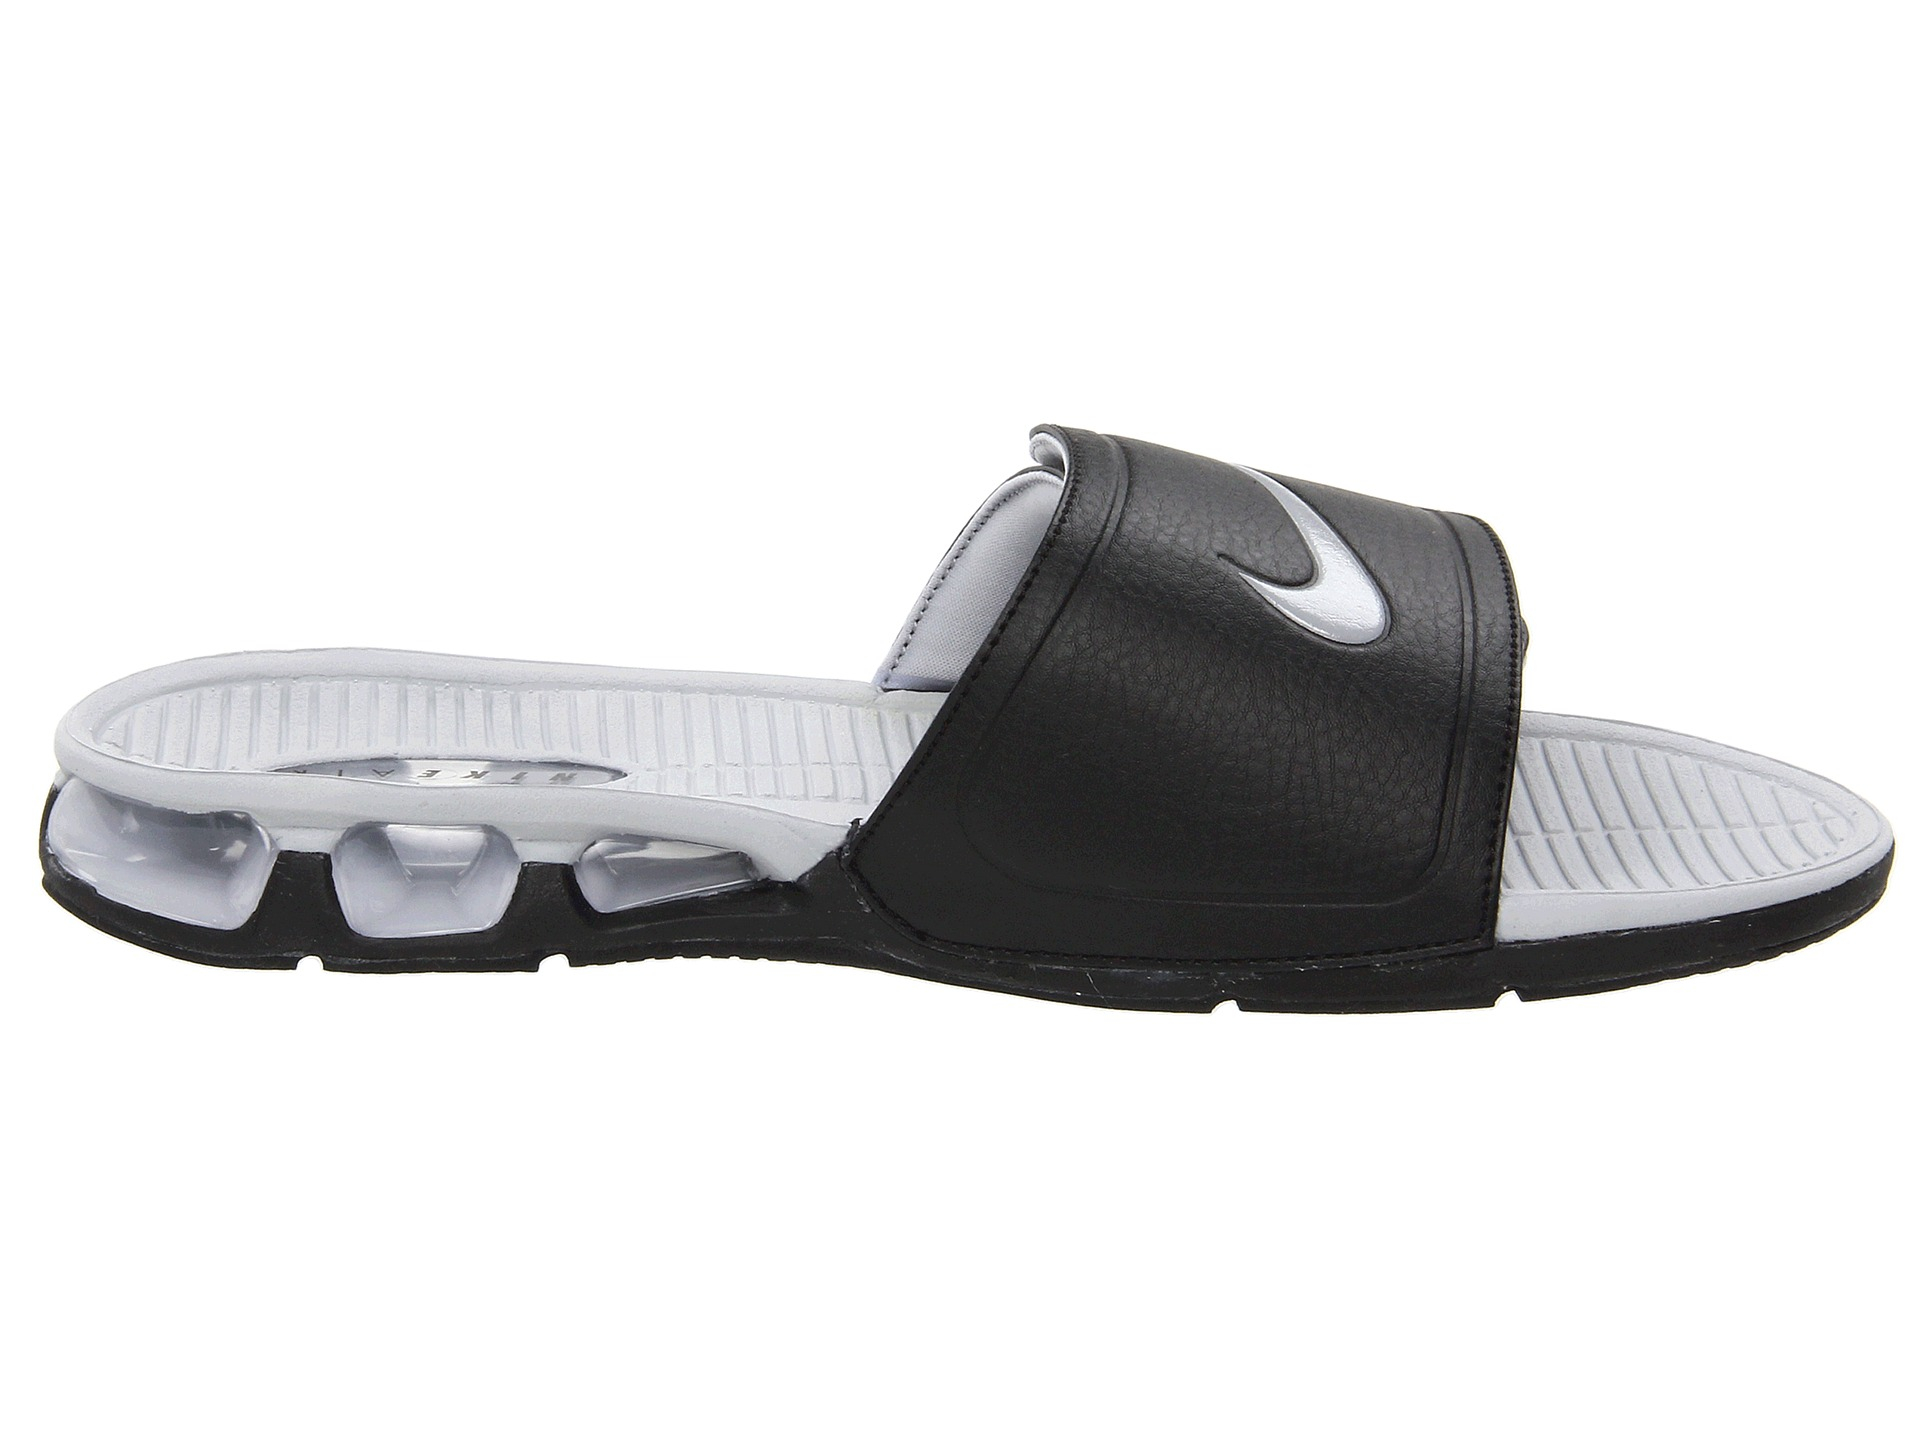 249fa121cd3e ... sandals 487331 001 finish line 13d76 460e3  wholesale lyst nike air  experience slide in black for men 2c87e 6a0d1